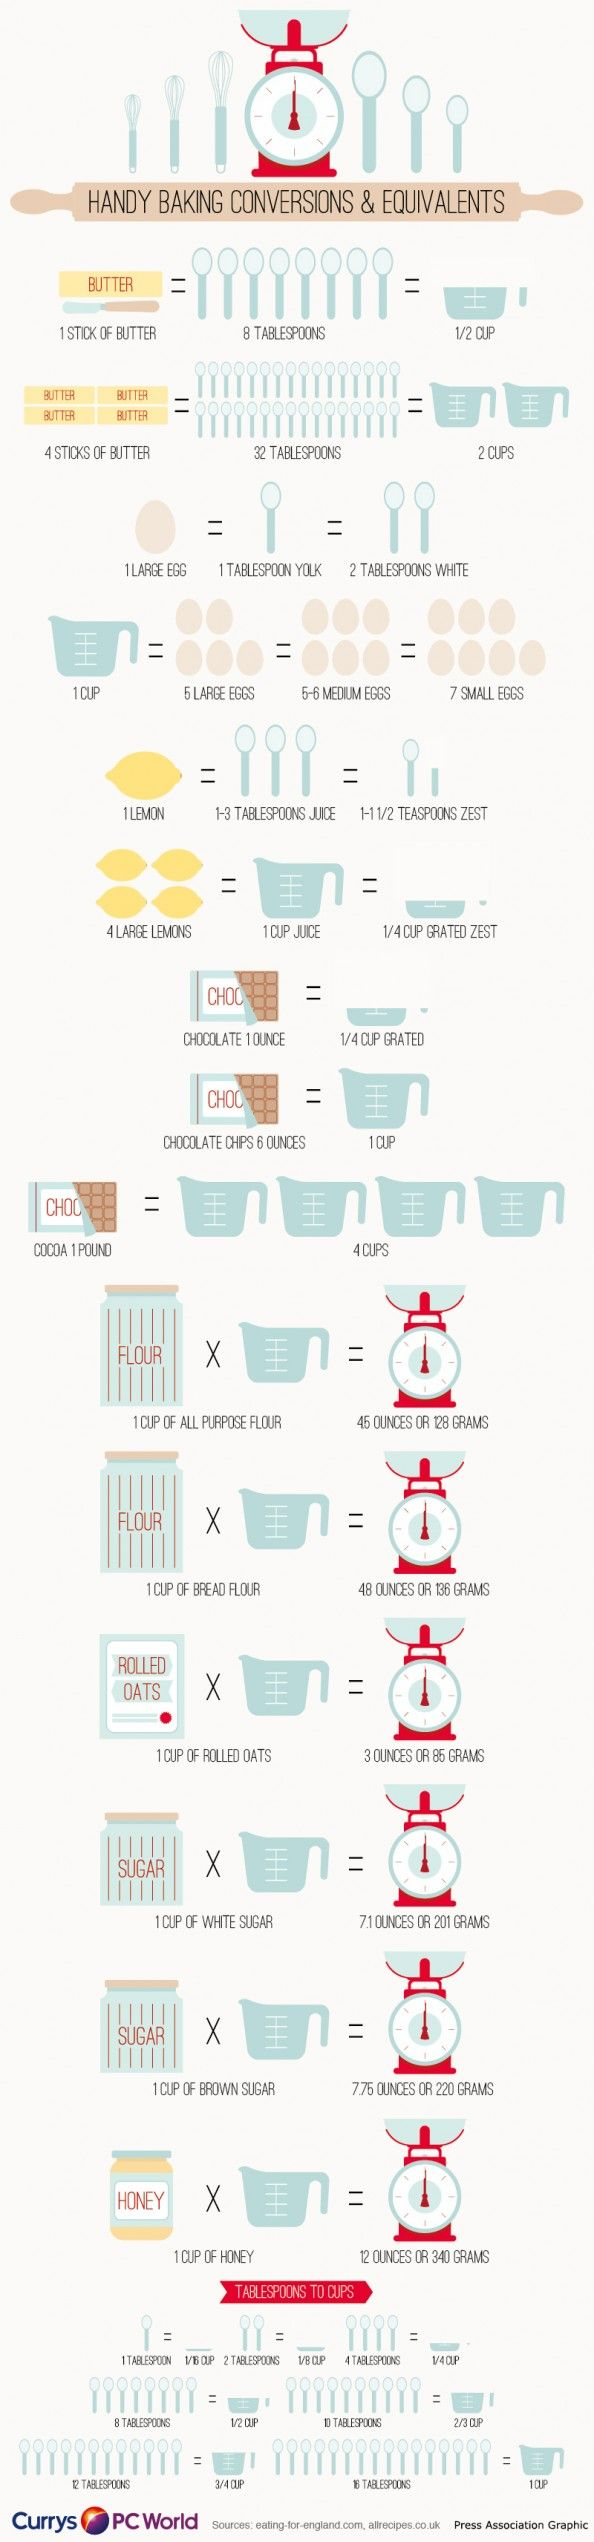 Foodie | Tipsographic | More foodie tips at http://www.tipsographic.com/